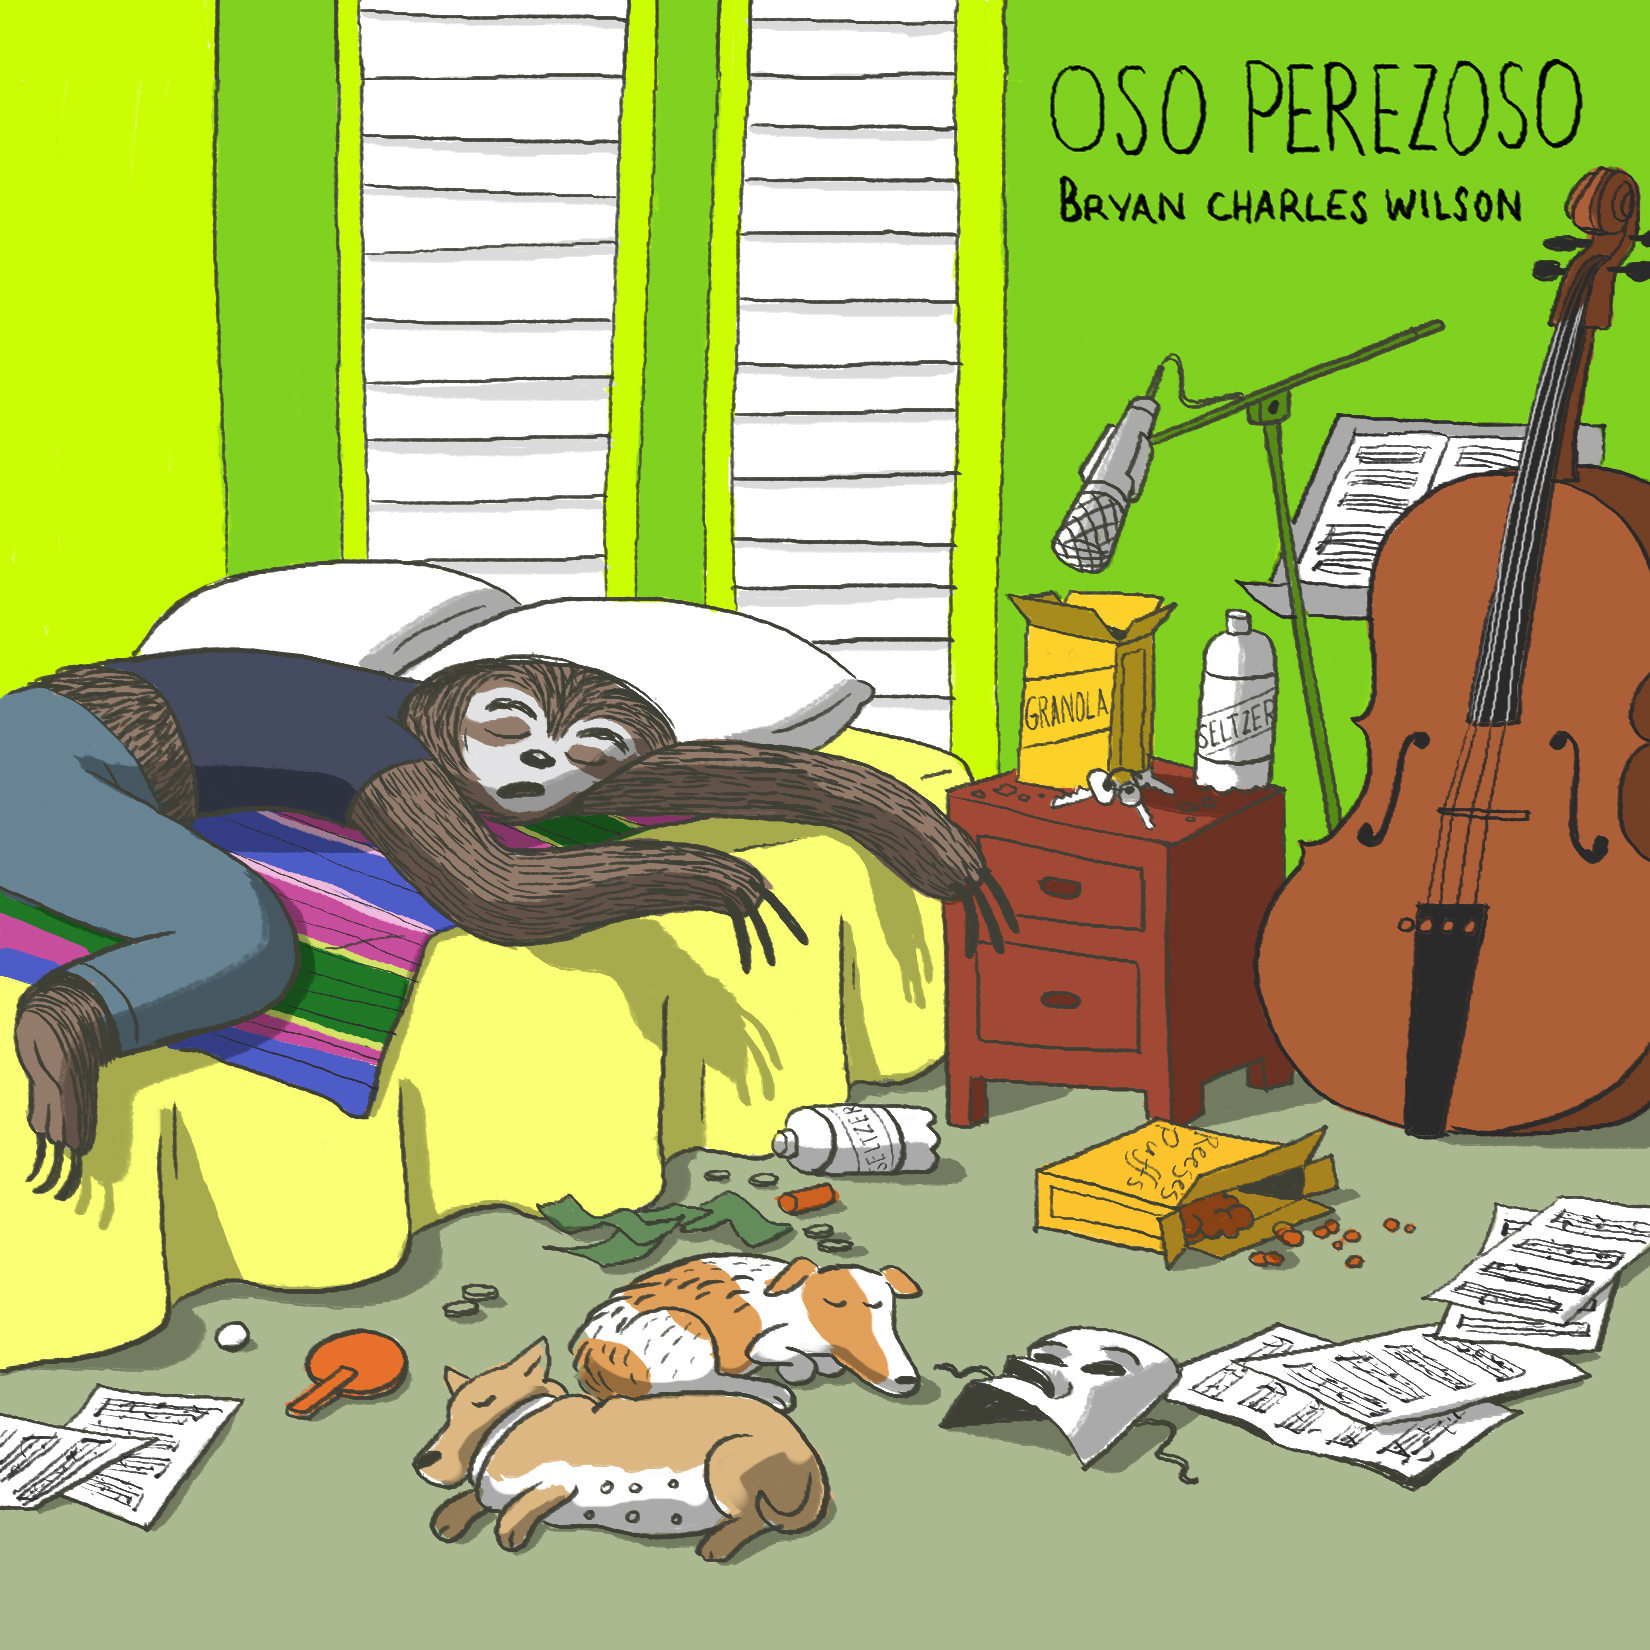 Oso Perezoso album artwork by  Miranda Tacchia